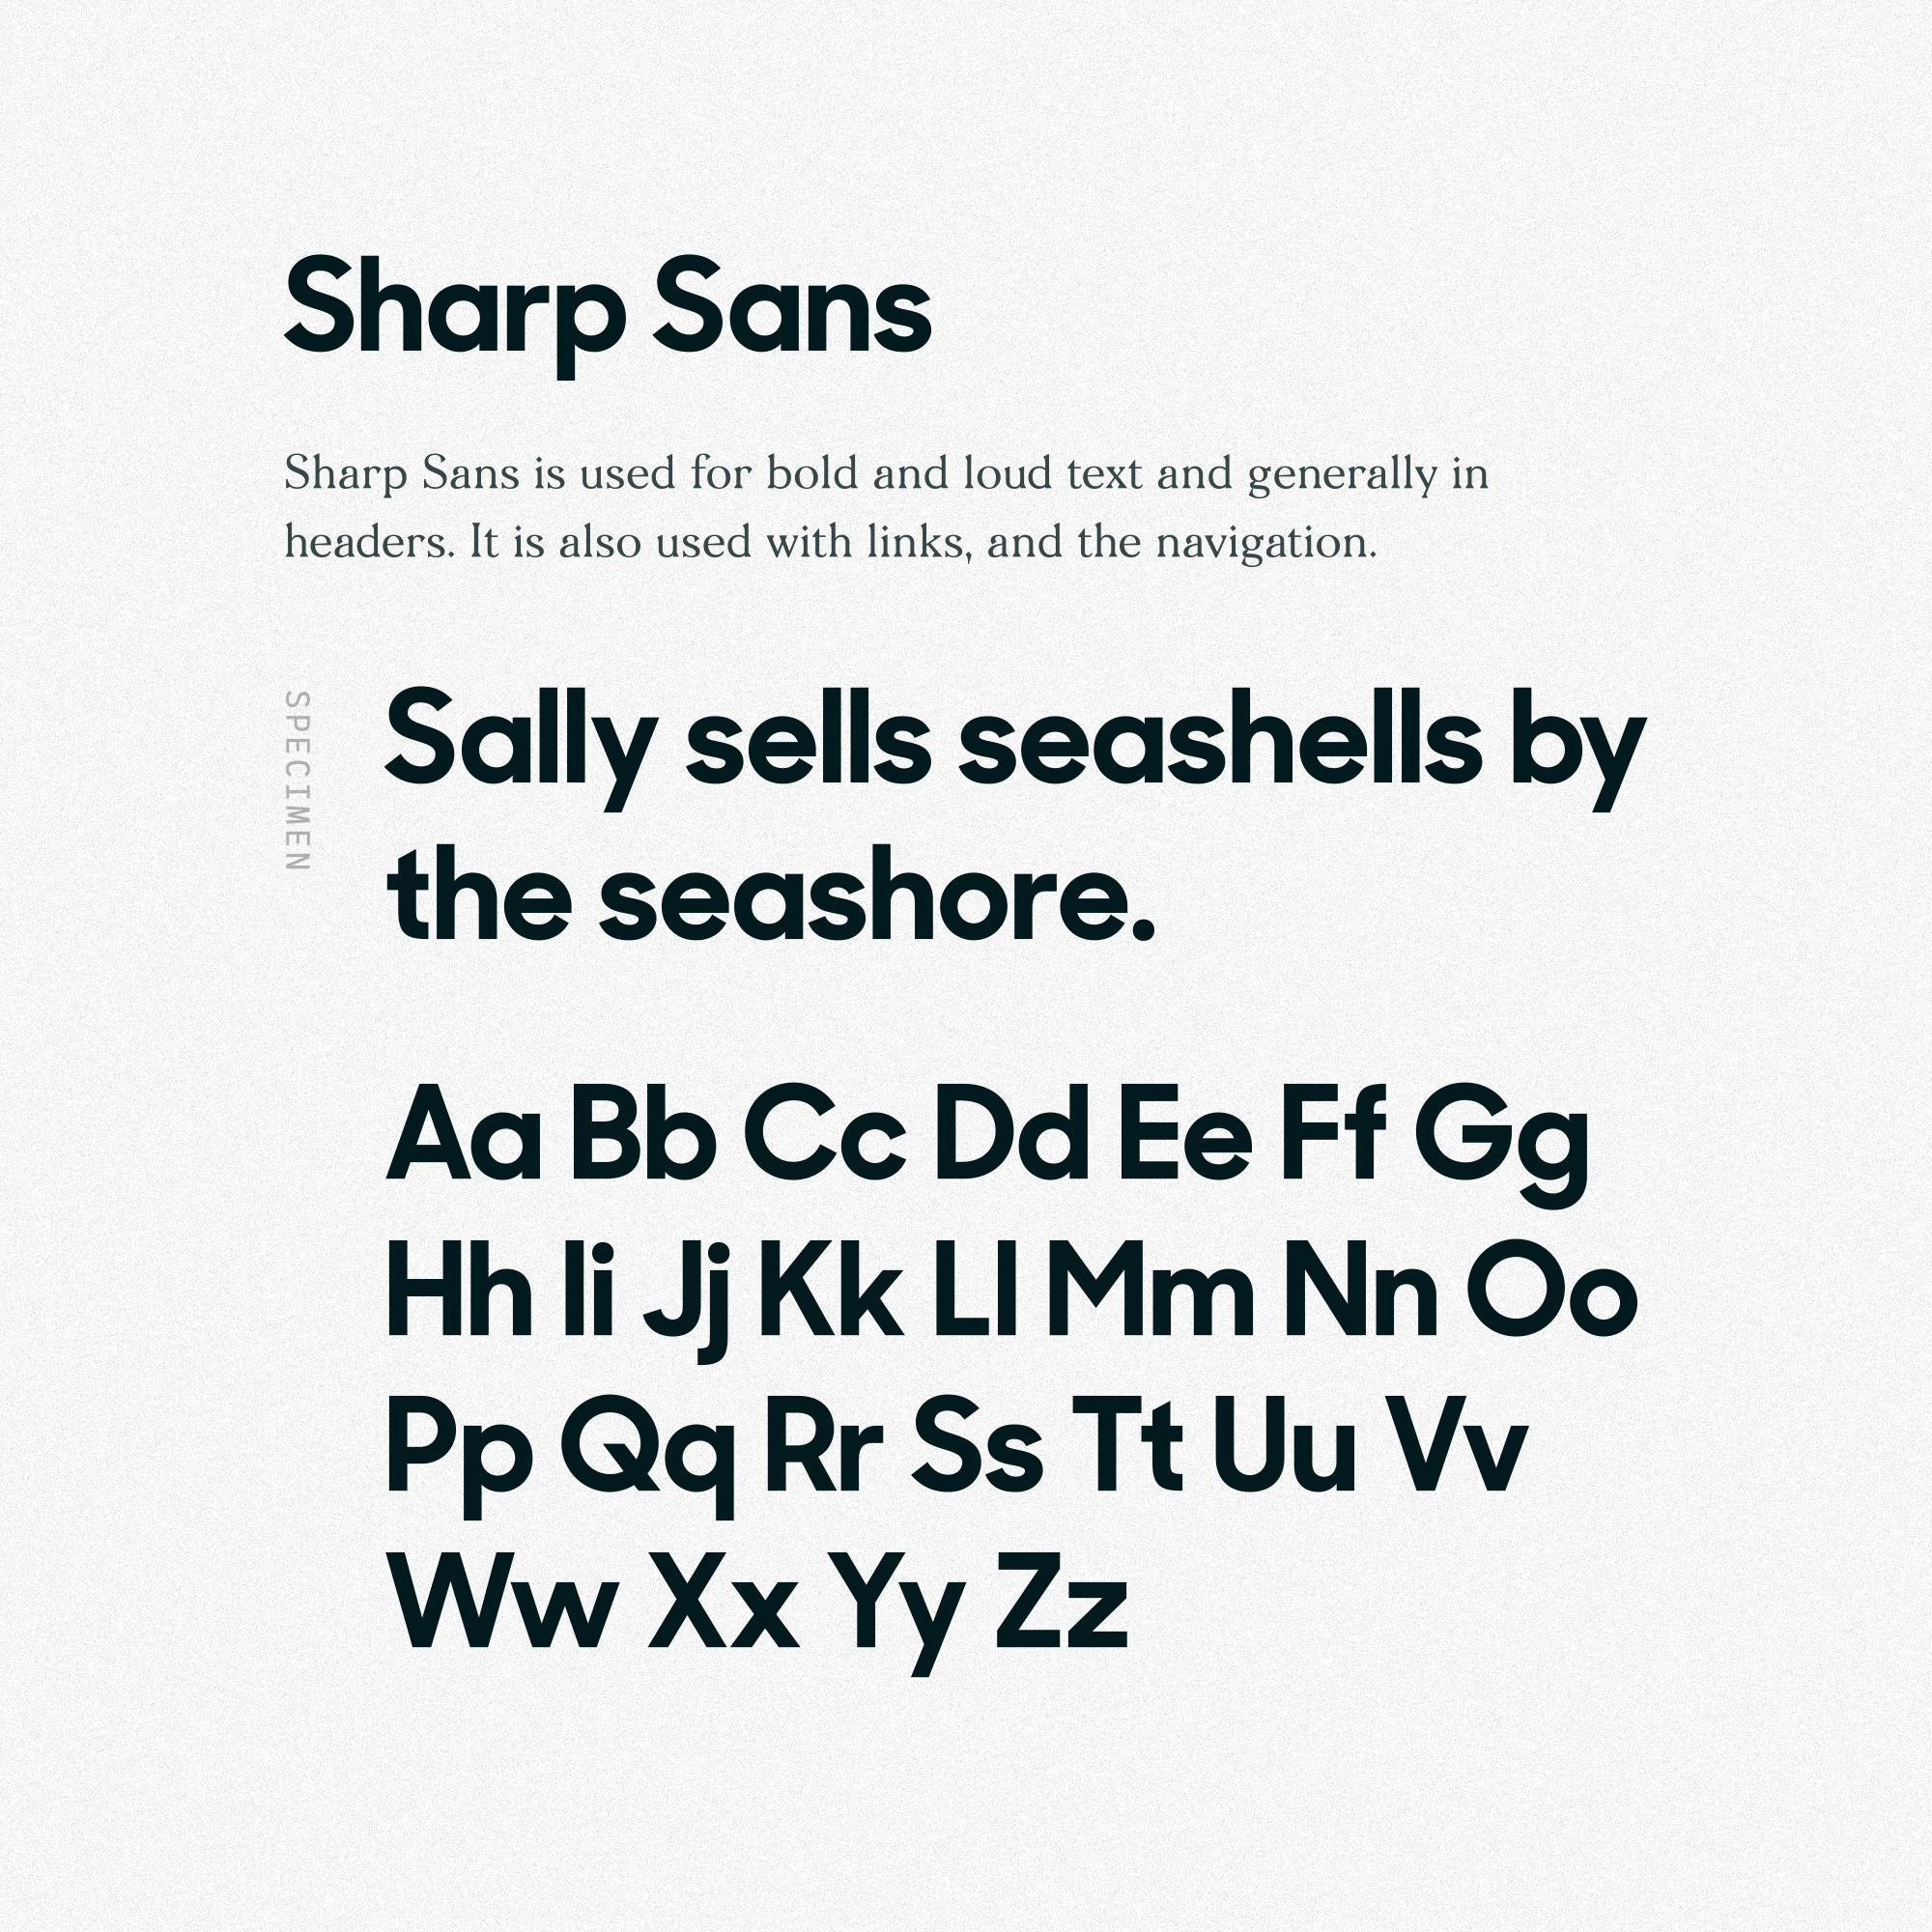 Sharp Sans by Commercial Type.